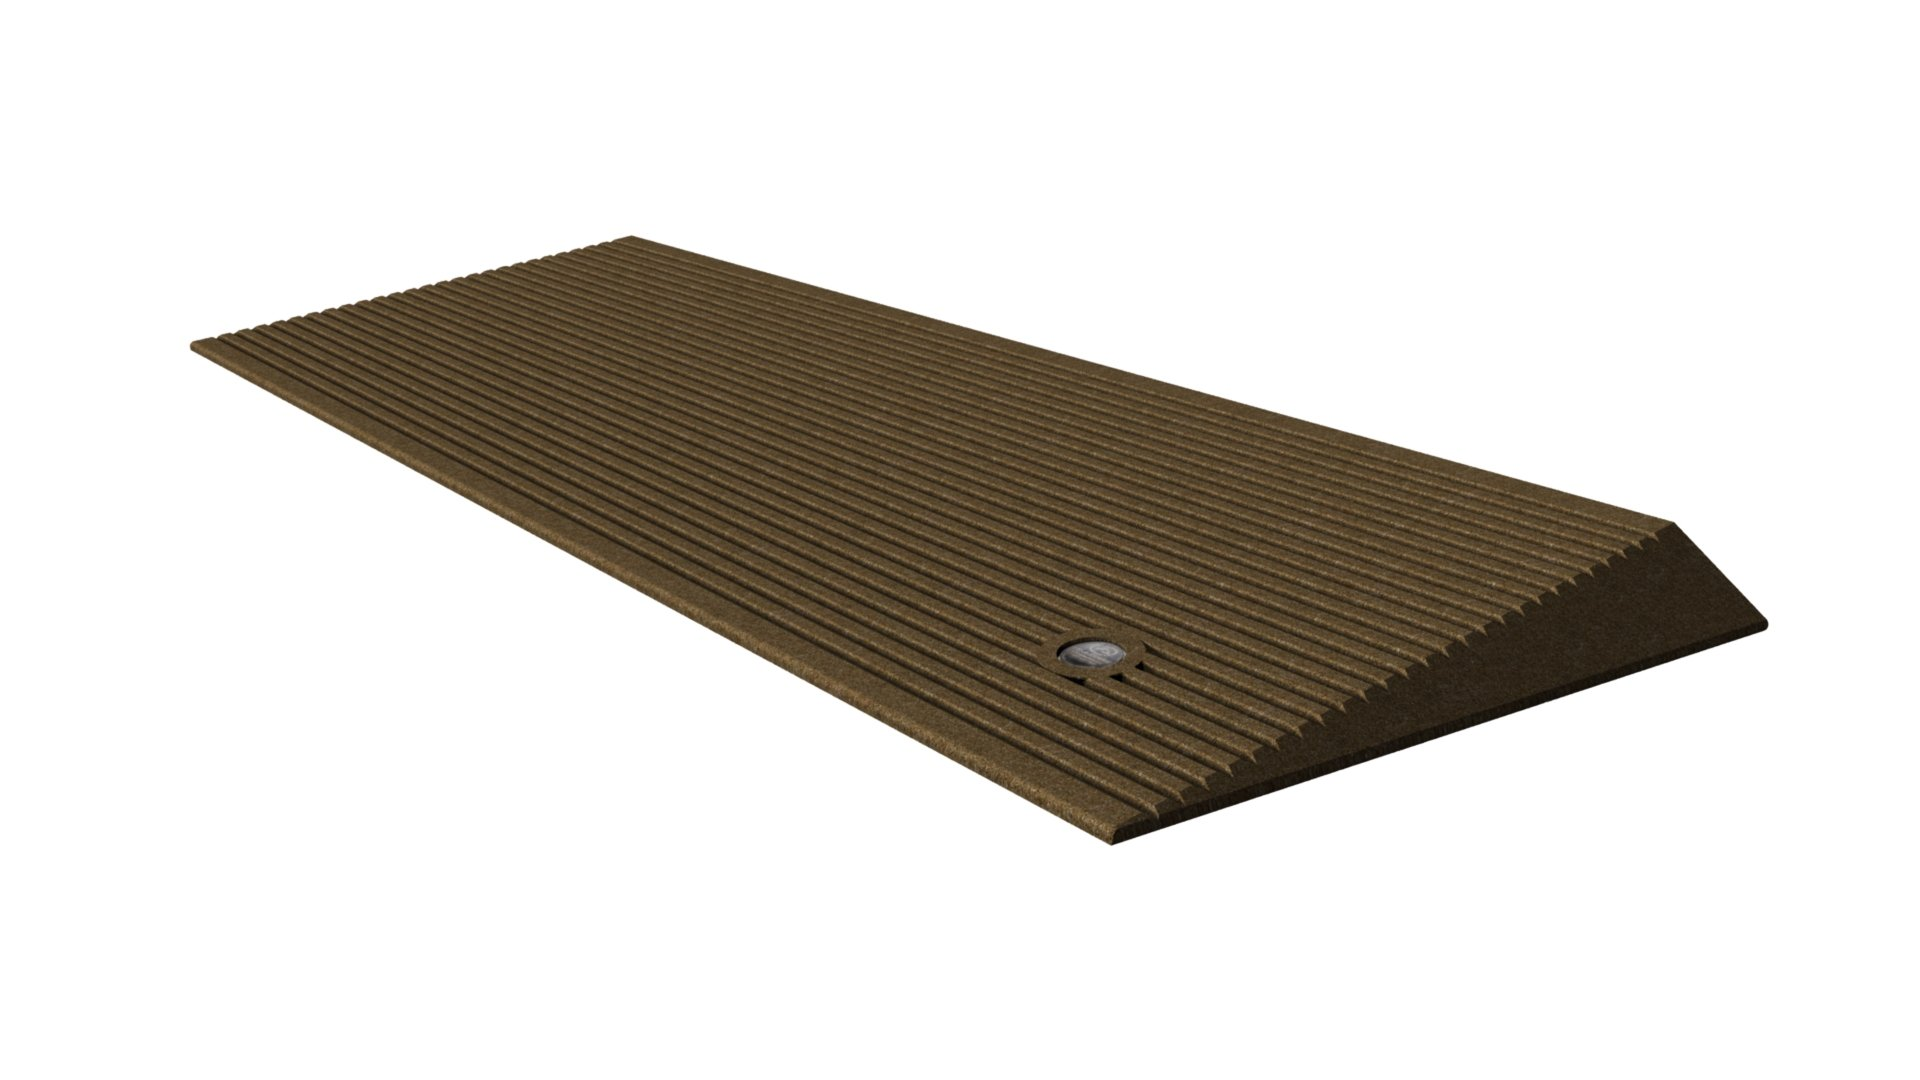 EZ-ACCESS Transitions Angled Entry Mat, Hazelnut Brown, 15 Pound